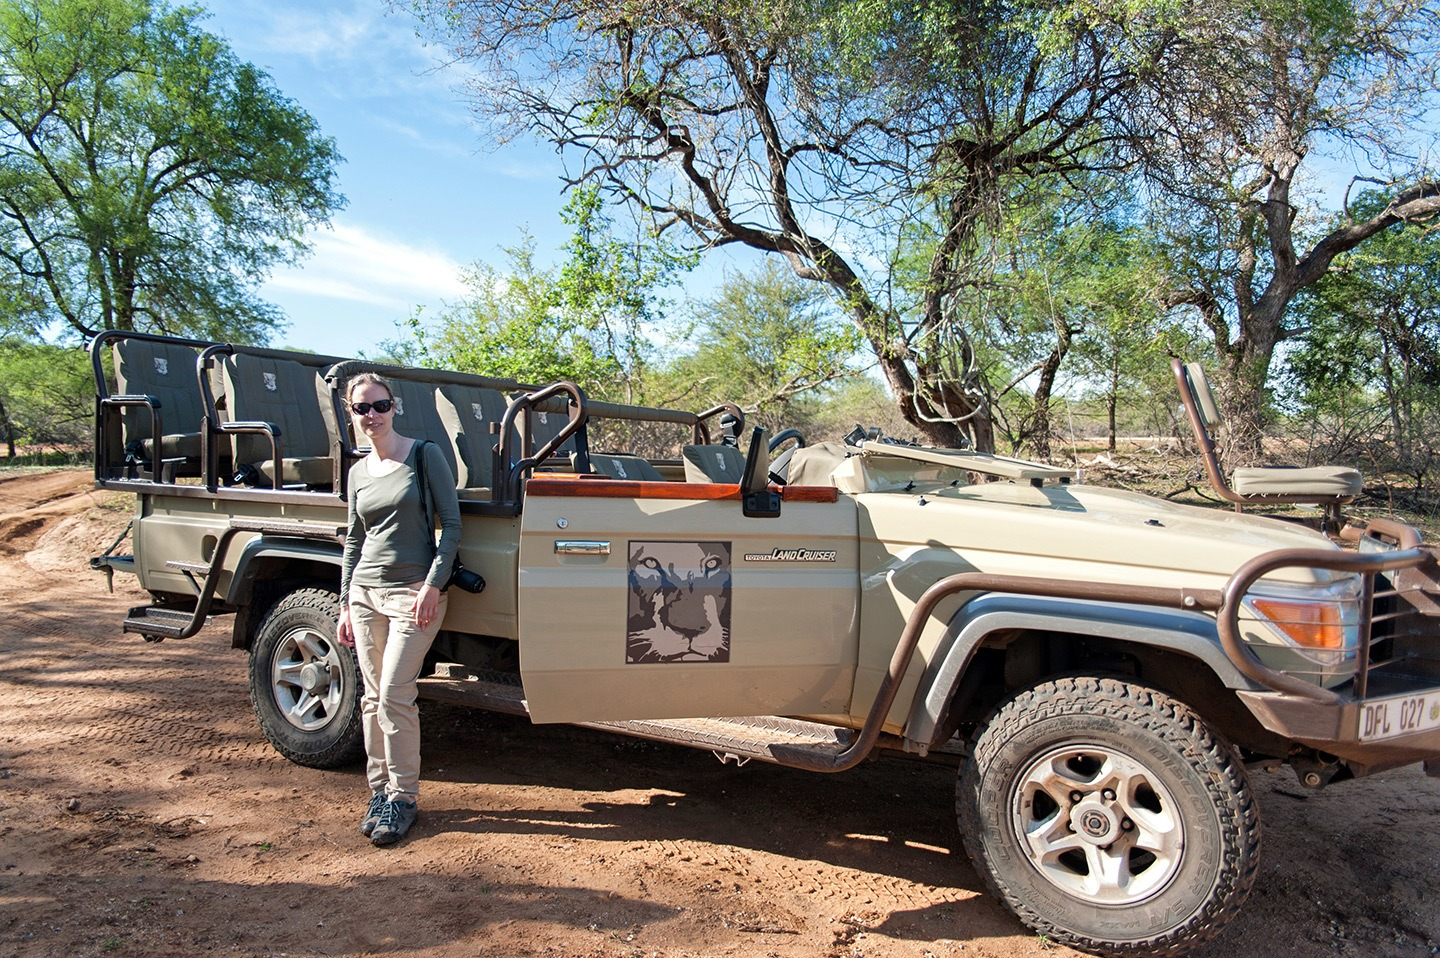 On safari in South Africa – a jeep in the bush